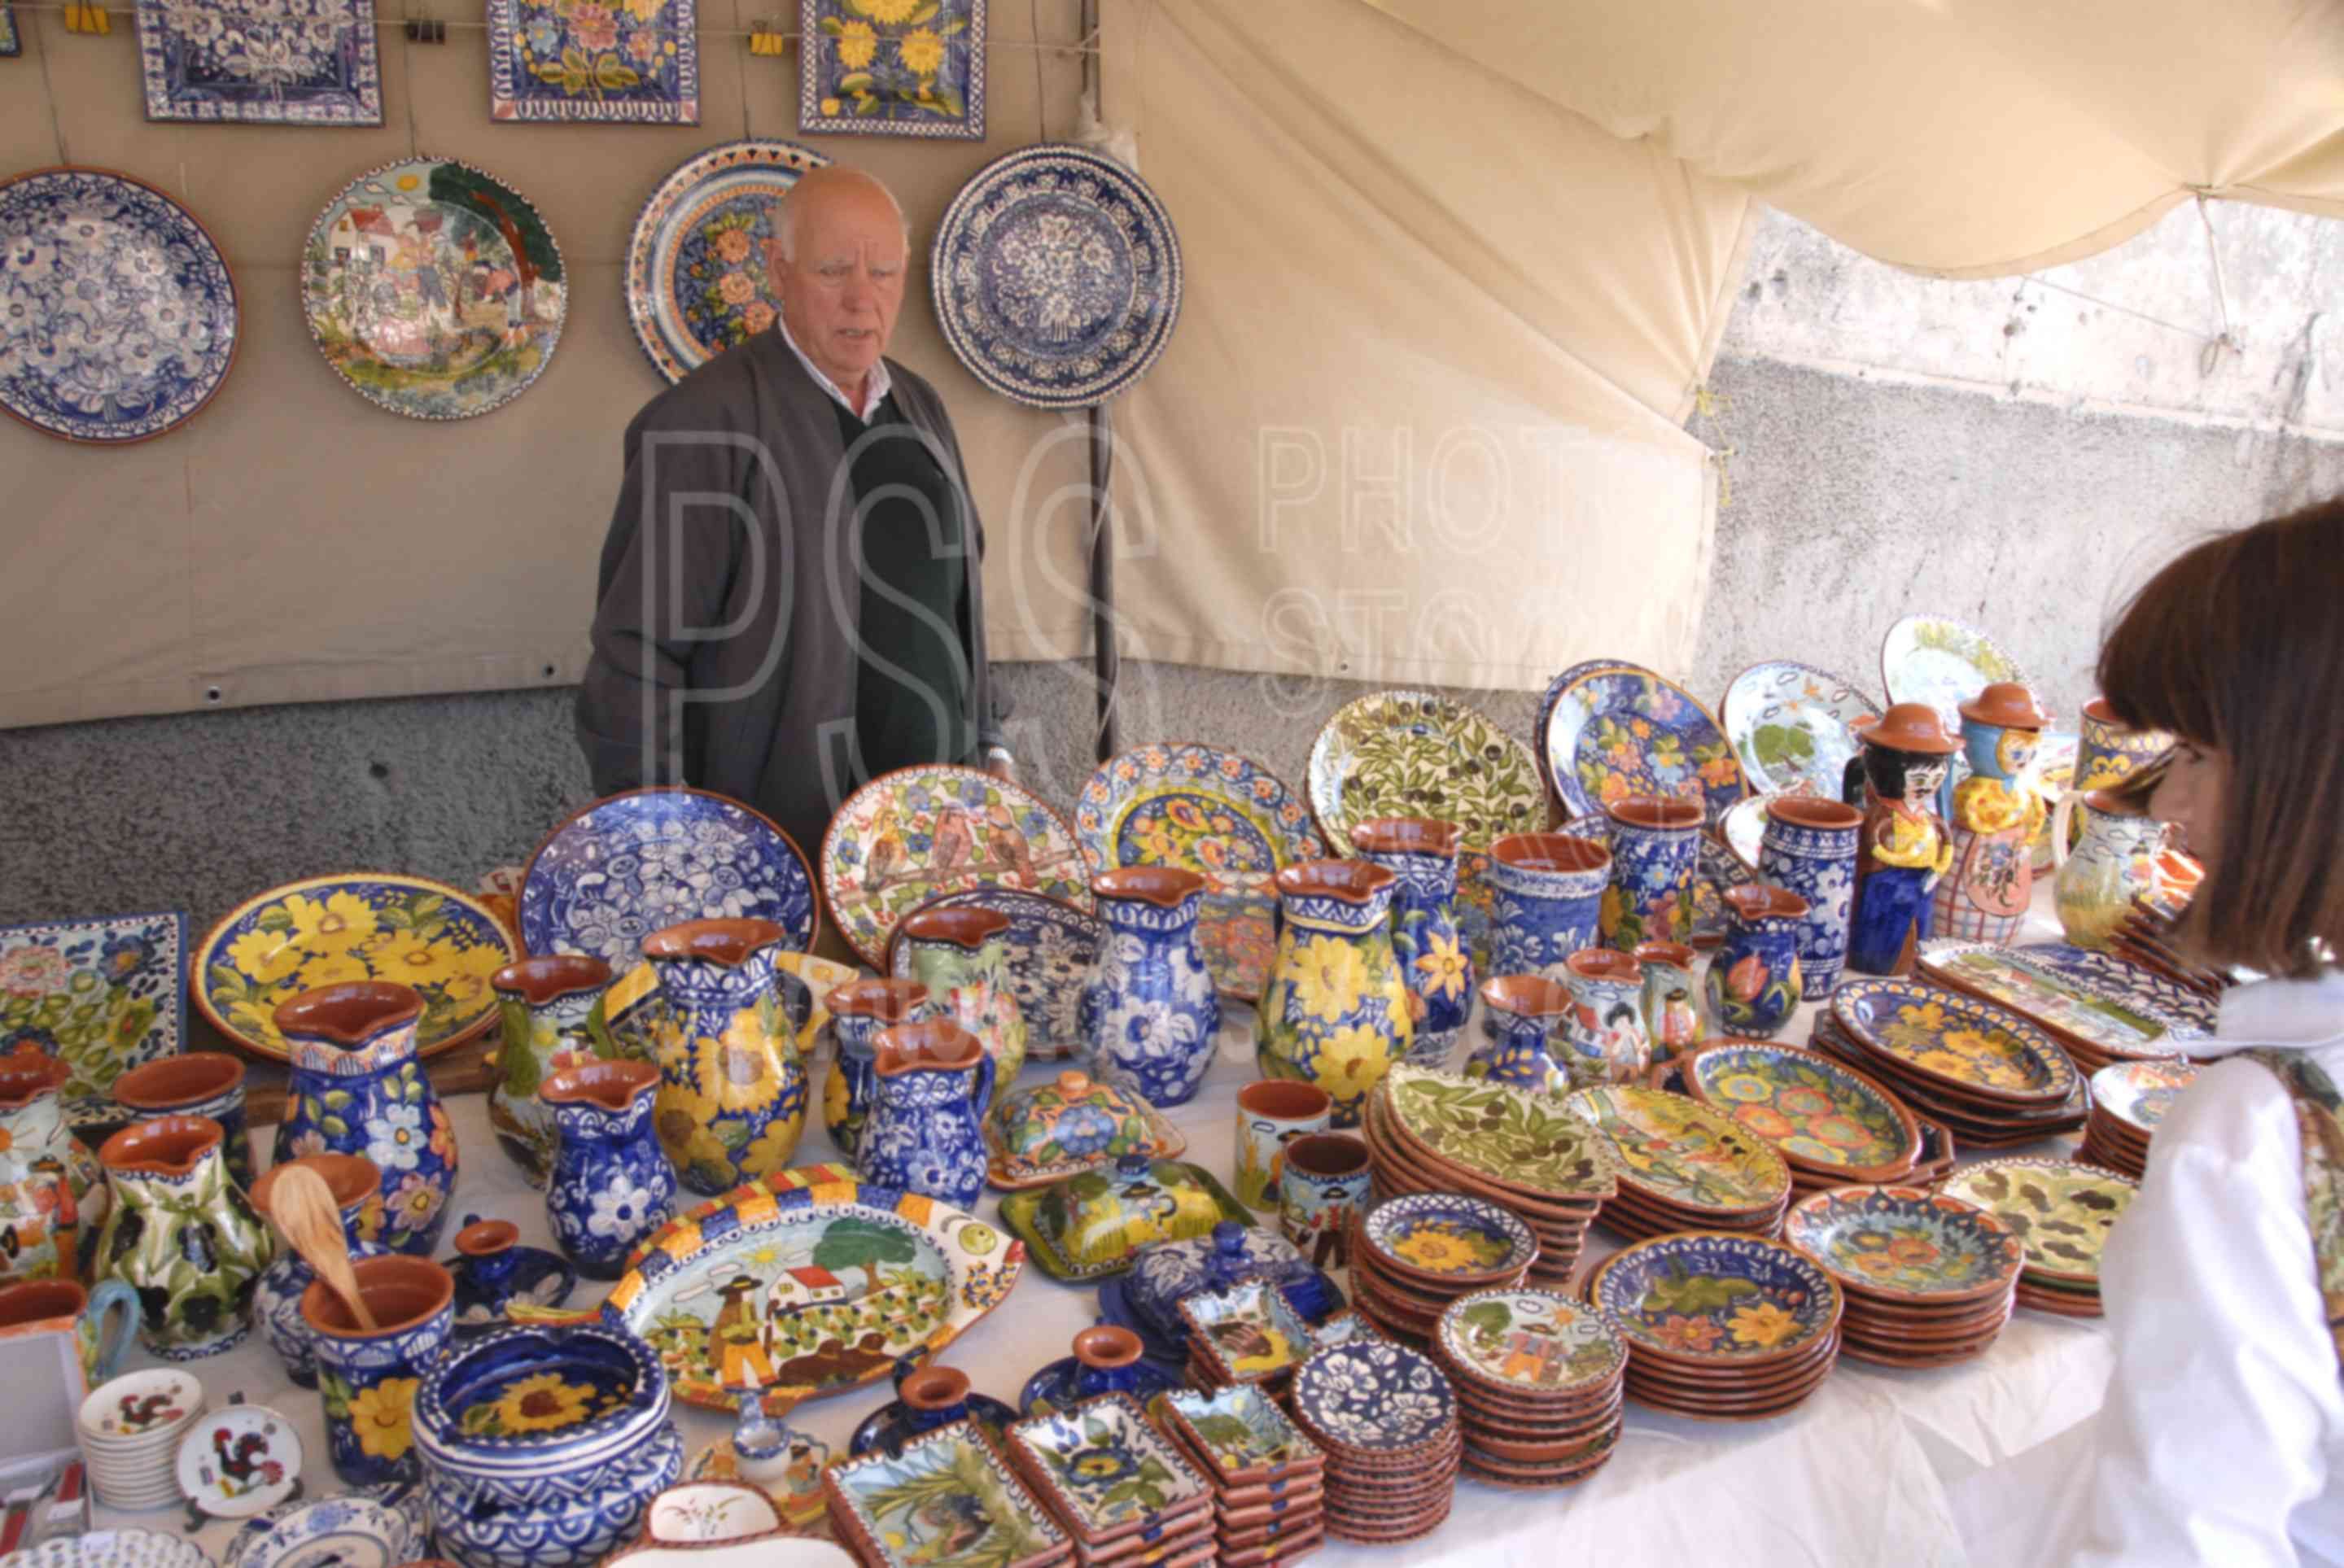 Ceramics Vendor,people,markets